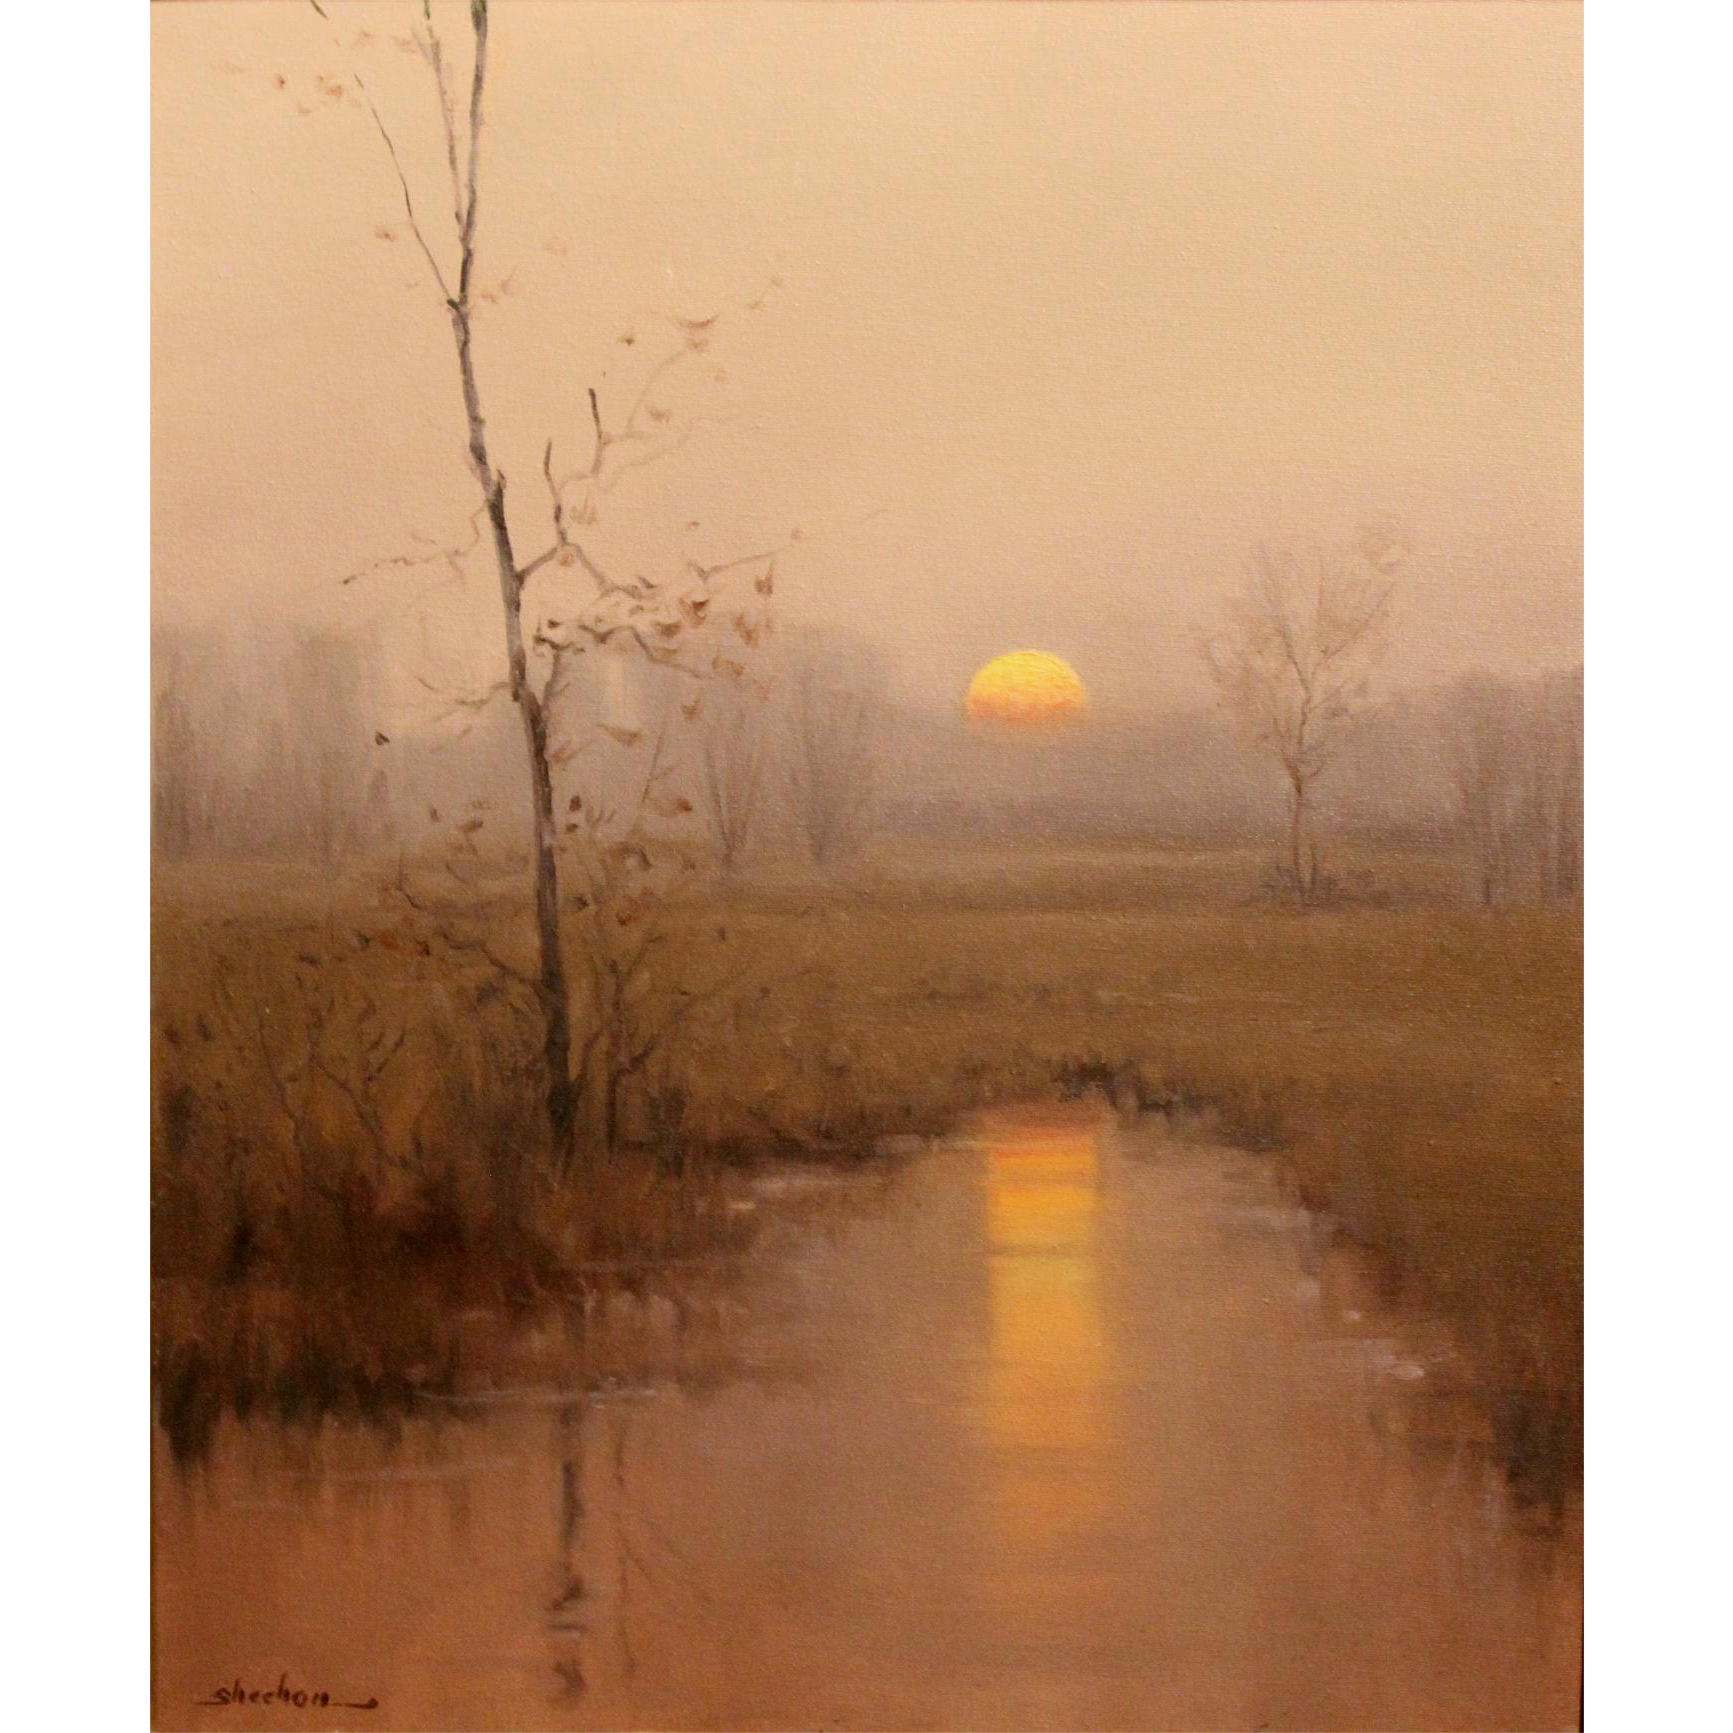 Dennis Sheehan Tonalist Landscape Oil Painting - Sunrise